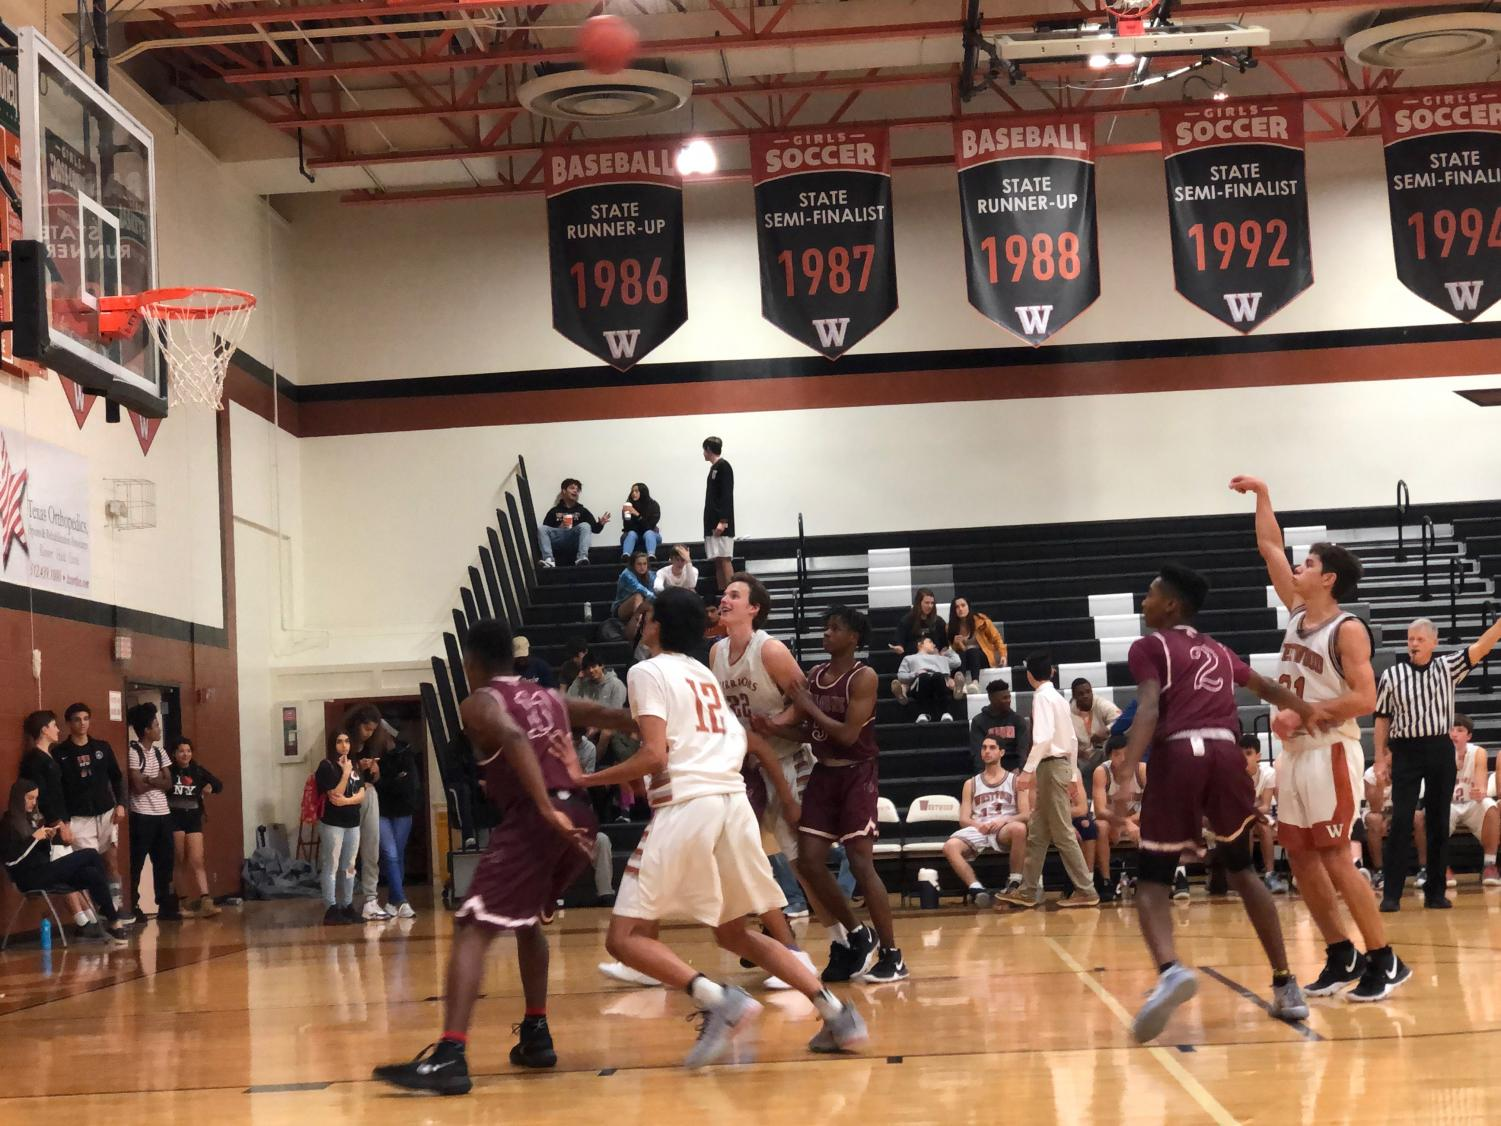 Lucian Tripon '21 shoots a high-arcing free throw to secure the win near the end of the game.